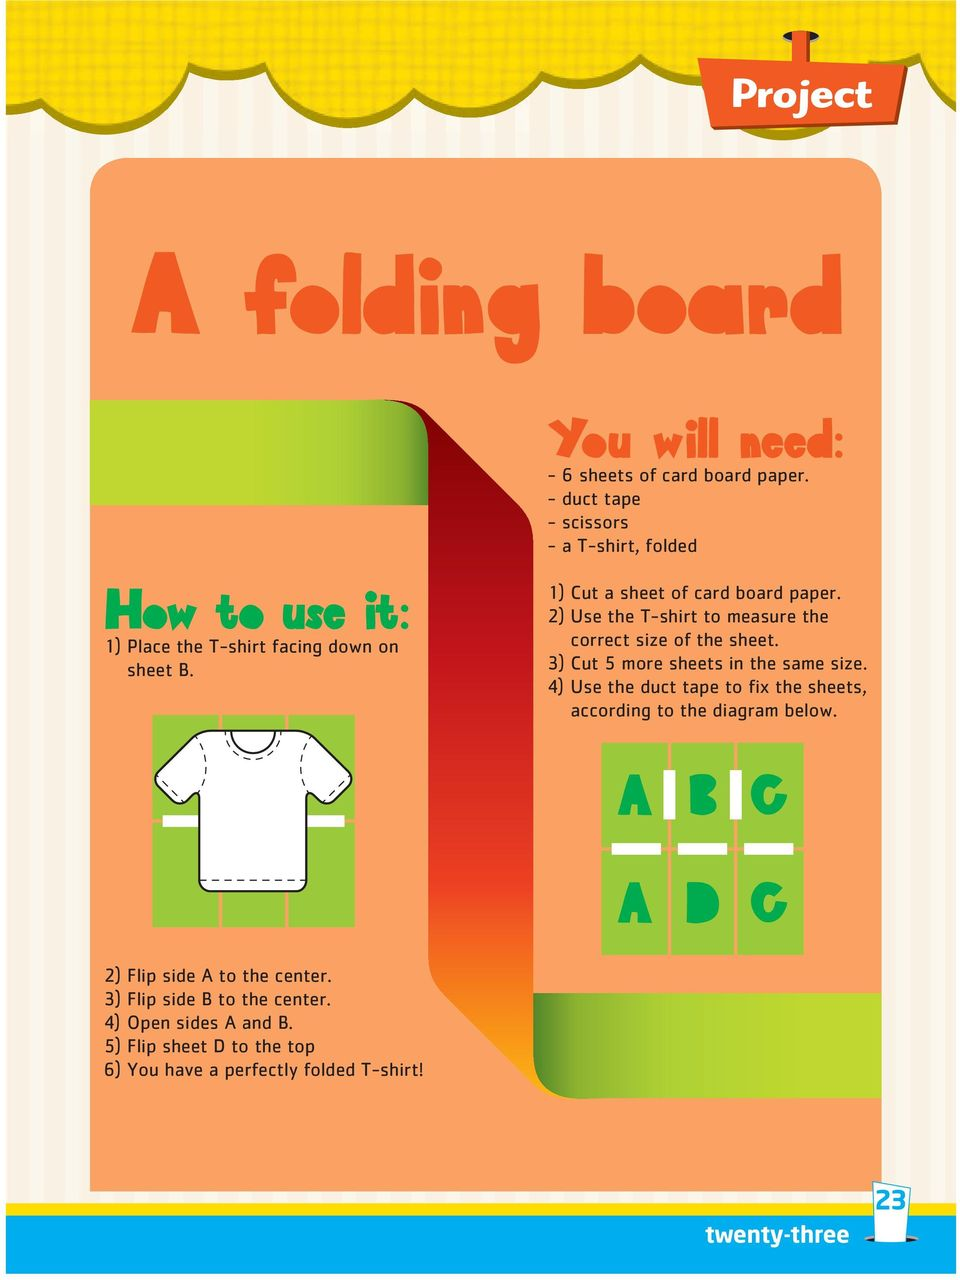 2) Use the T-shirt to measure the correct size of the sheet. 3) Cut 5 more sheets in the same size.